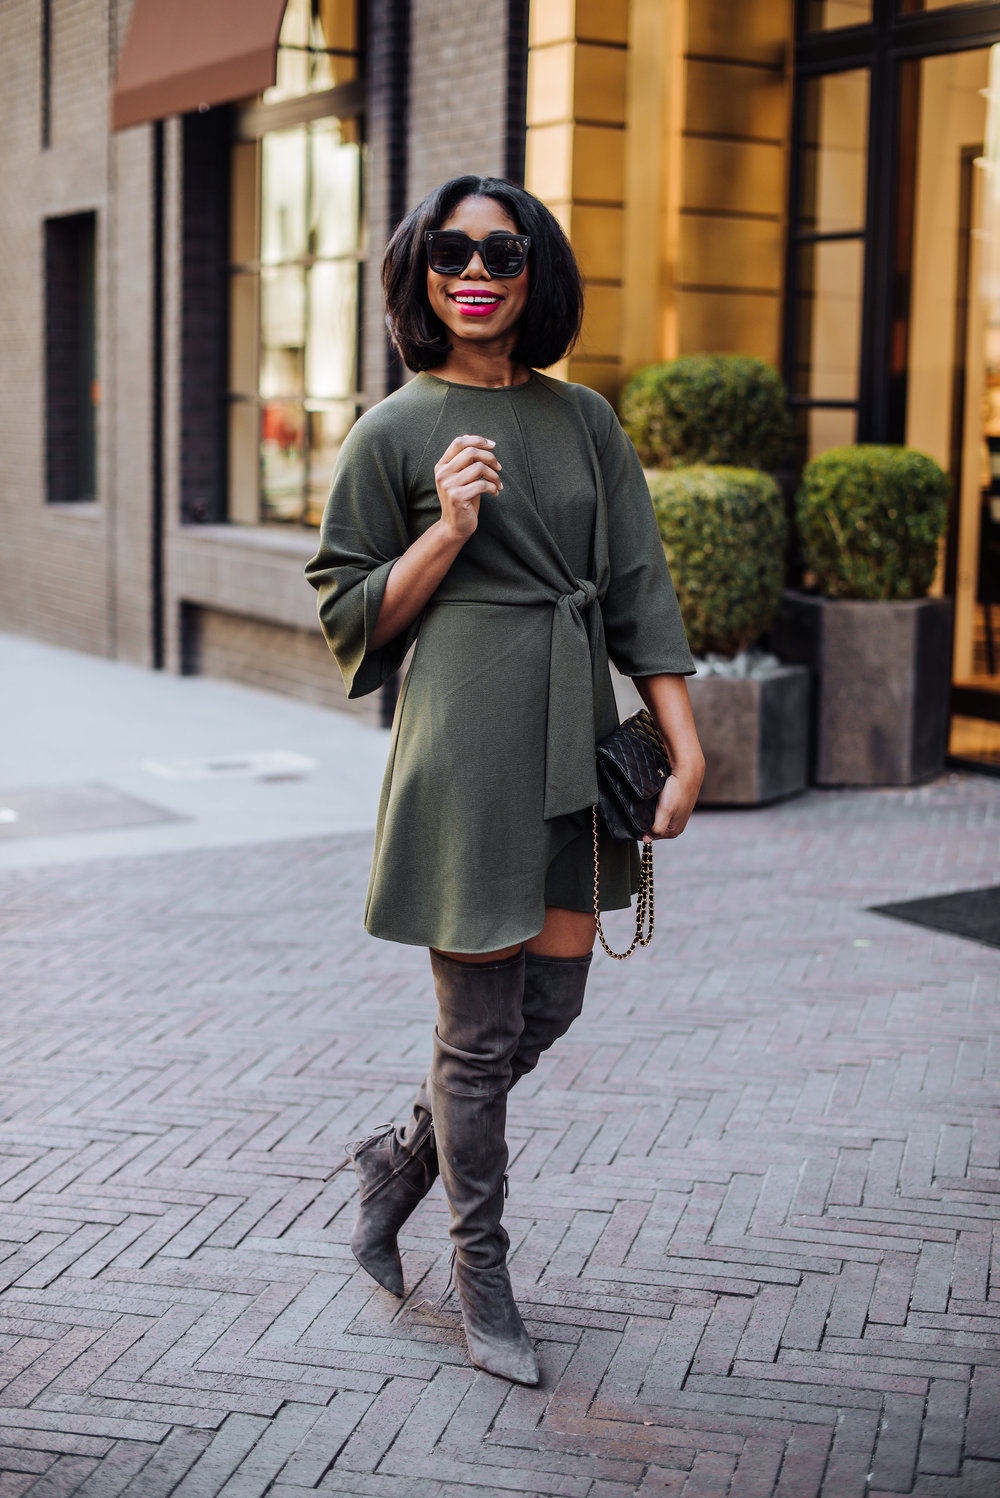 Over The Knee Boots 101.JPG